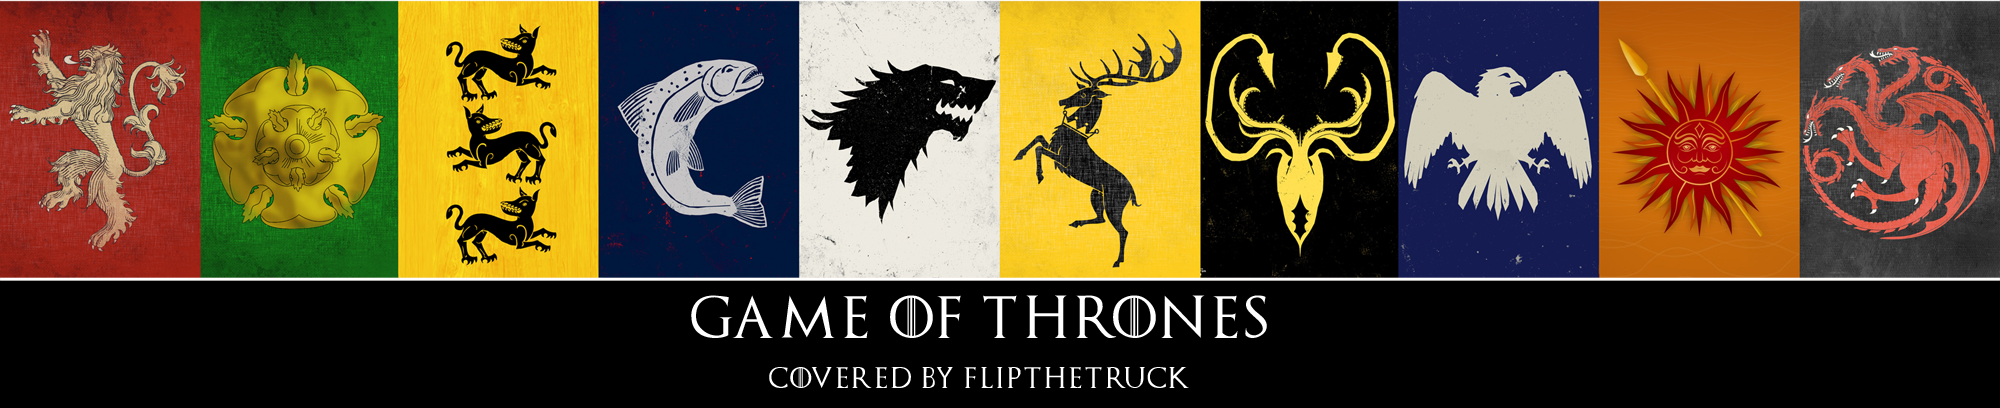 Banner game of thrones